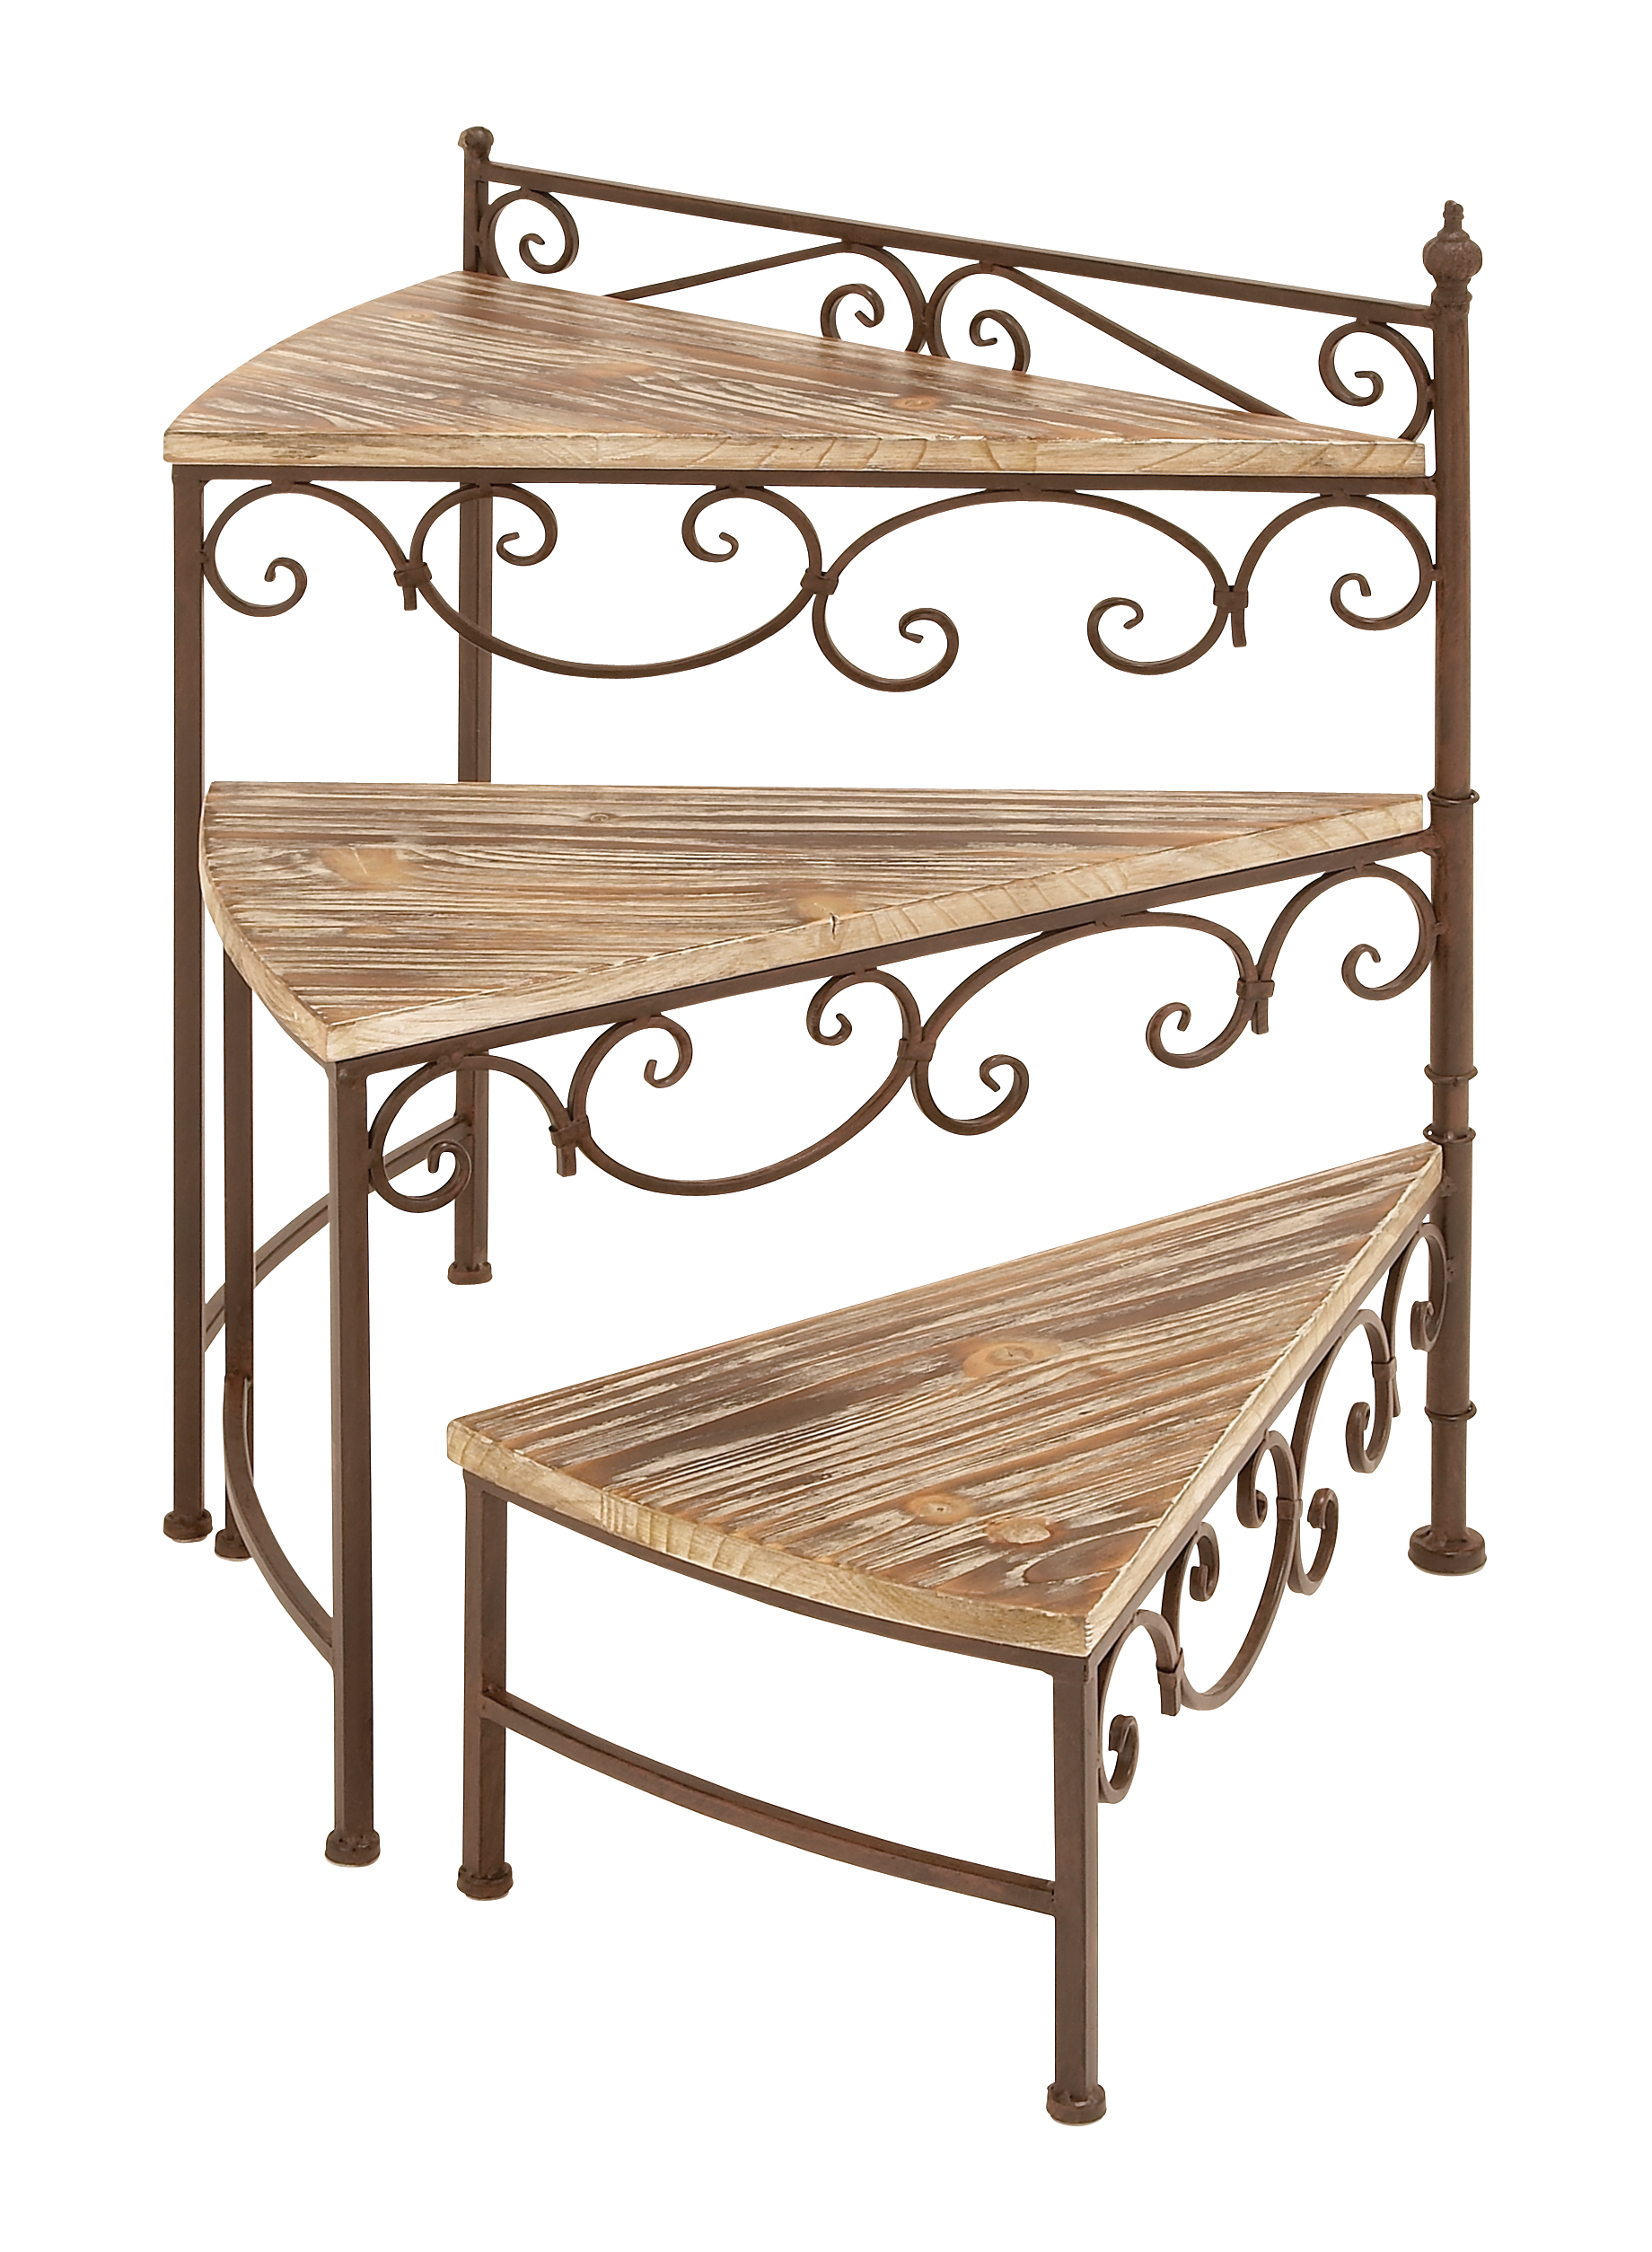 Decmode Traditional Scrolled Iron and Fir Wood Three-Tiered Plant Stand, Brown by DecMode